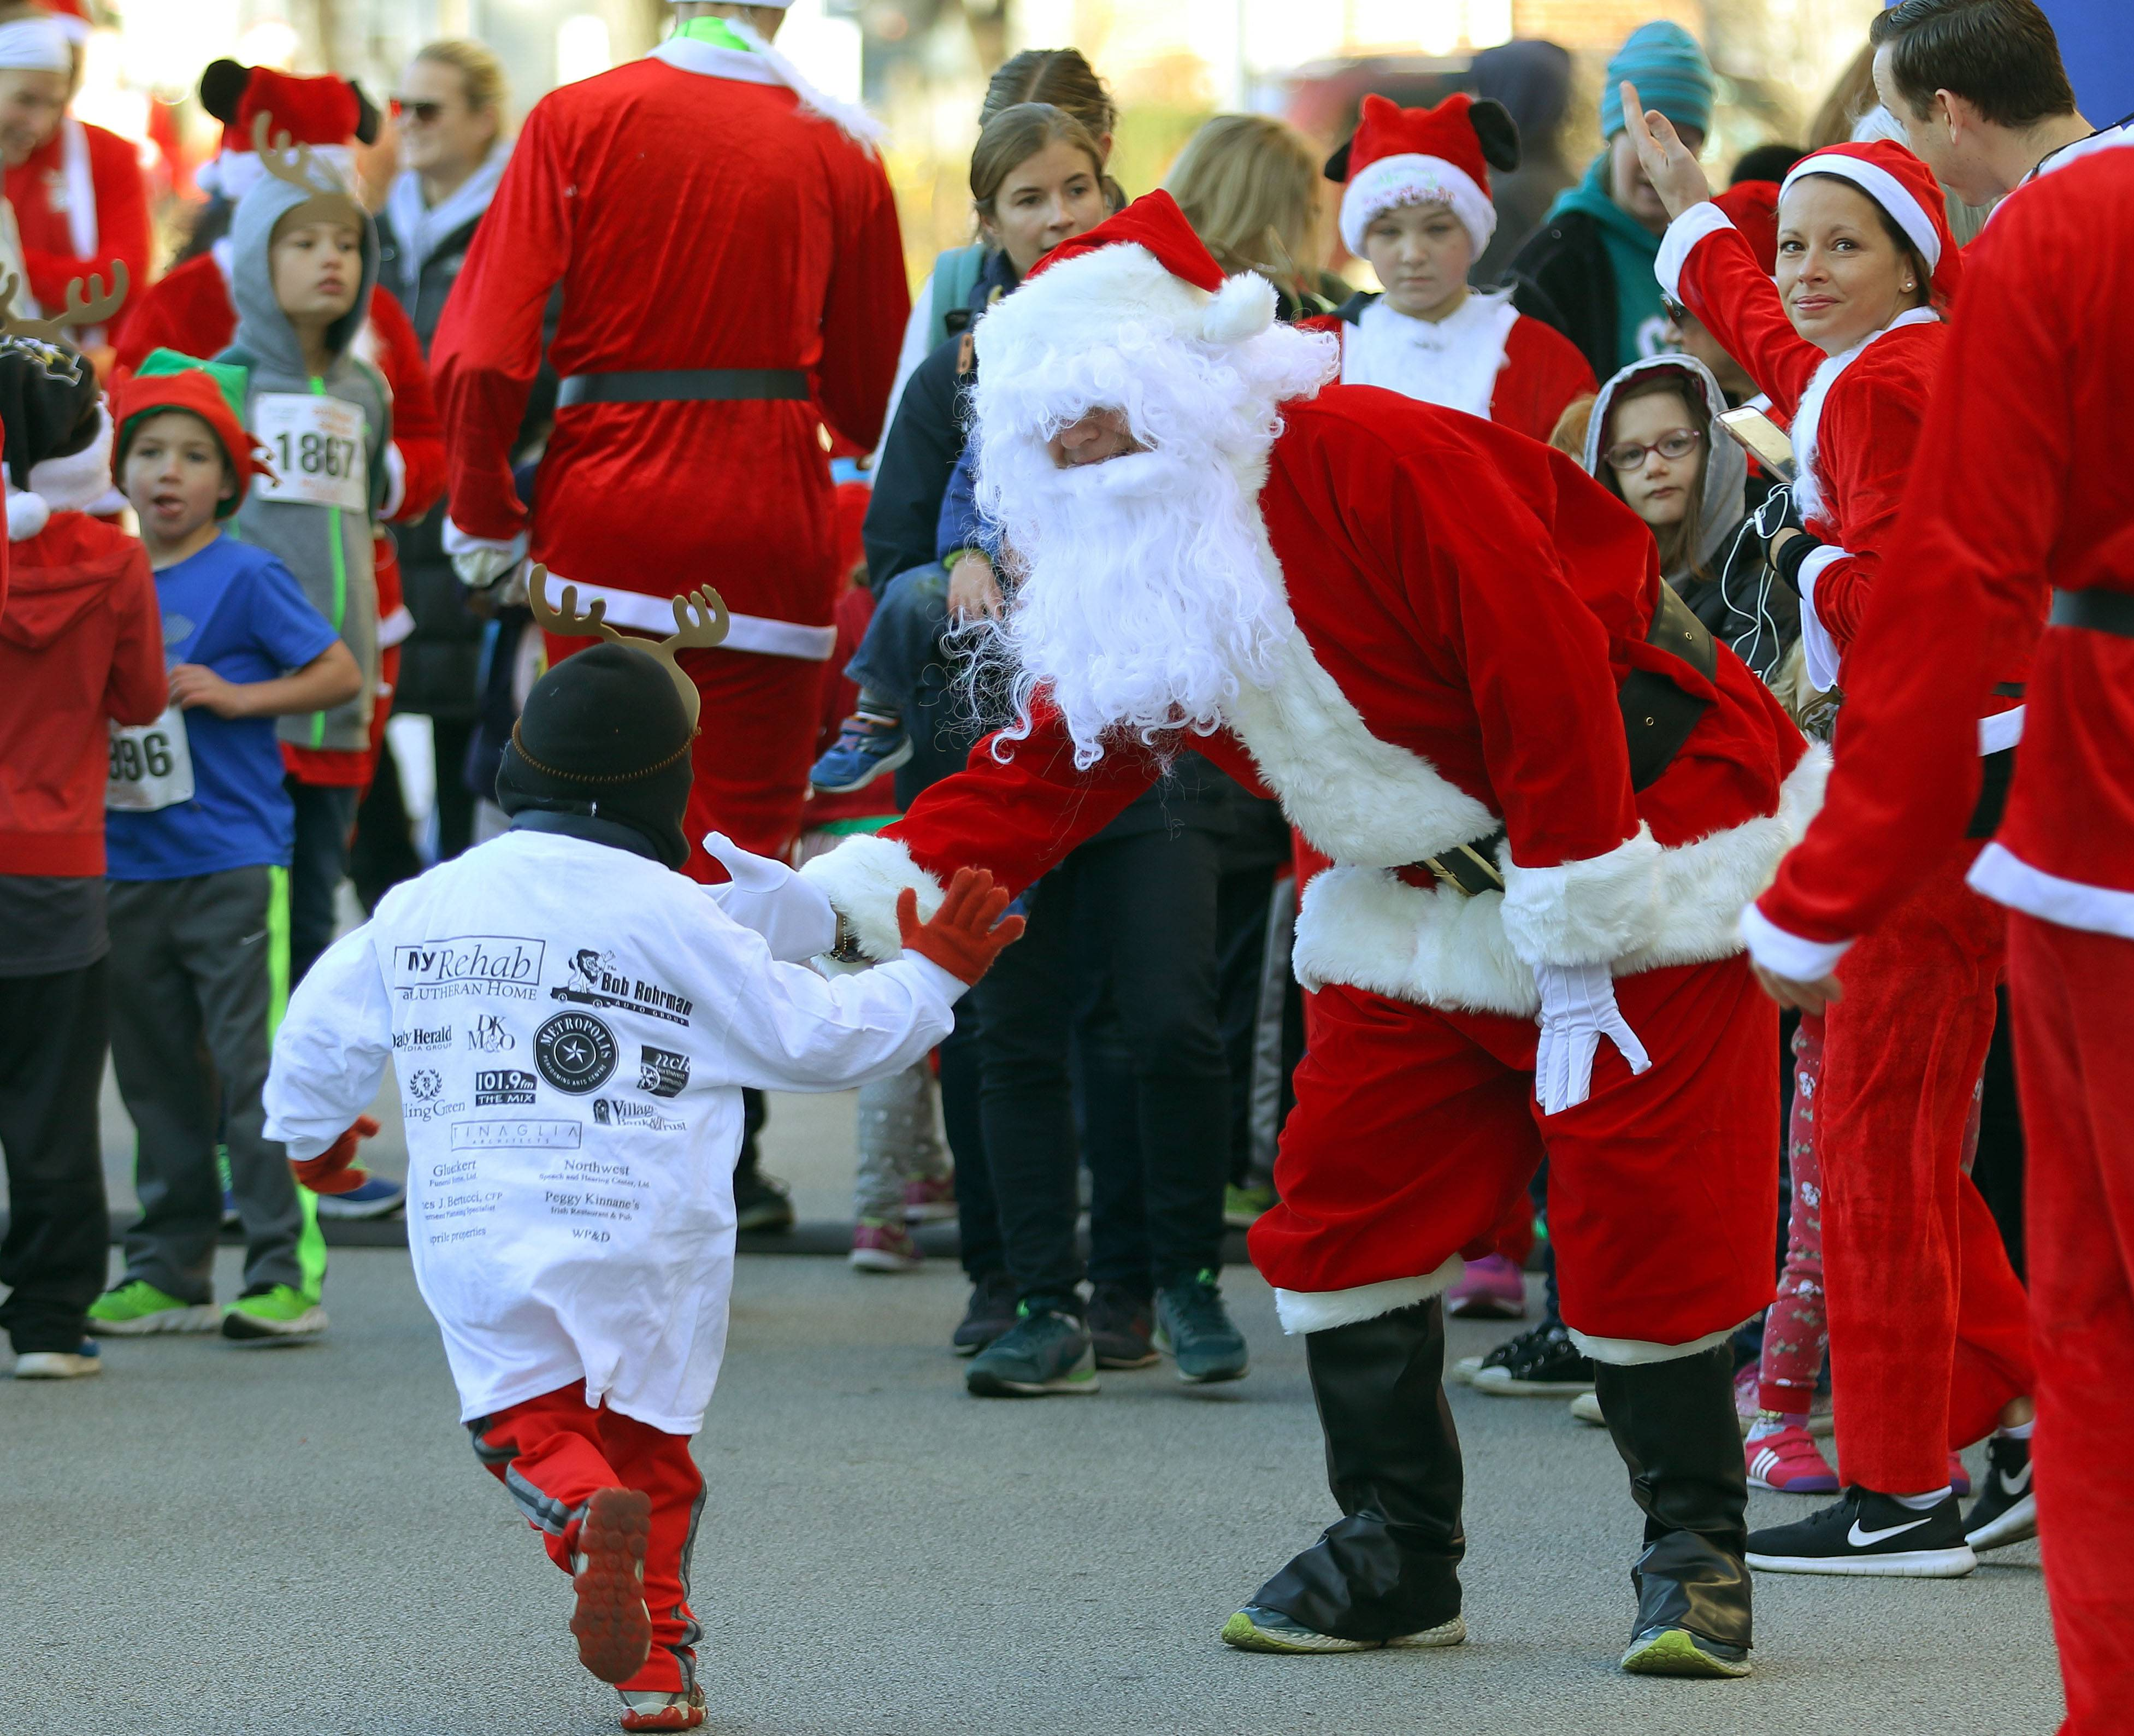 Santa high-fives kids participating in the four-block Reinder Run during the 10th annual Rotary Santa run in downtown Arlington Heights Saturday.